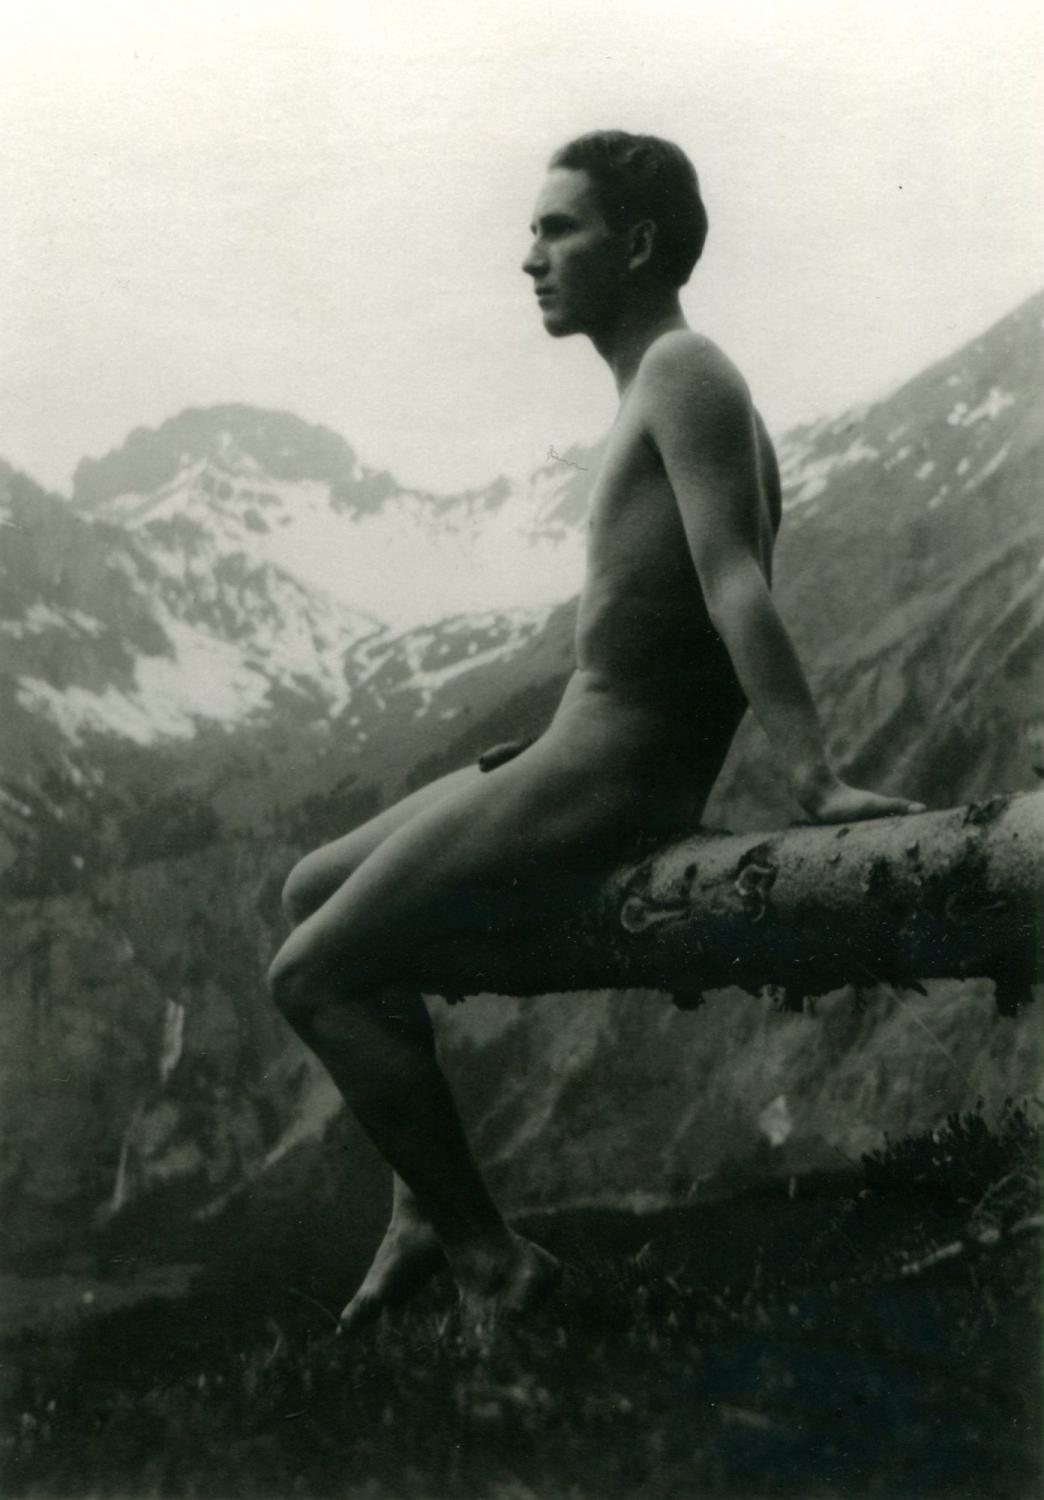 Swiss Nudes: 1943-1952 (MALE NUDES) Werner Bandi Hardcover